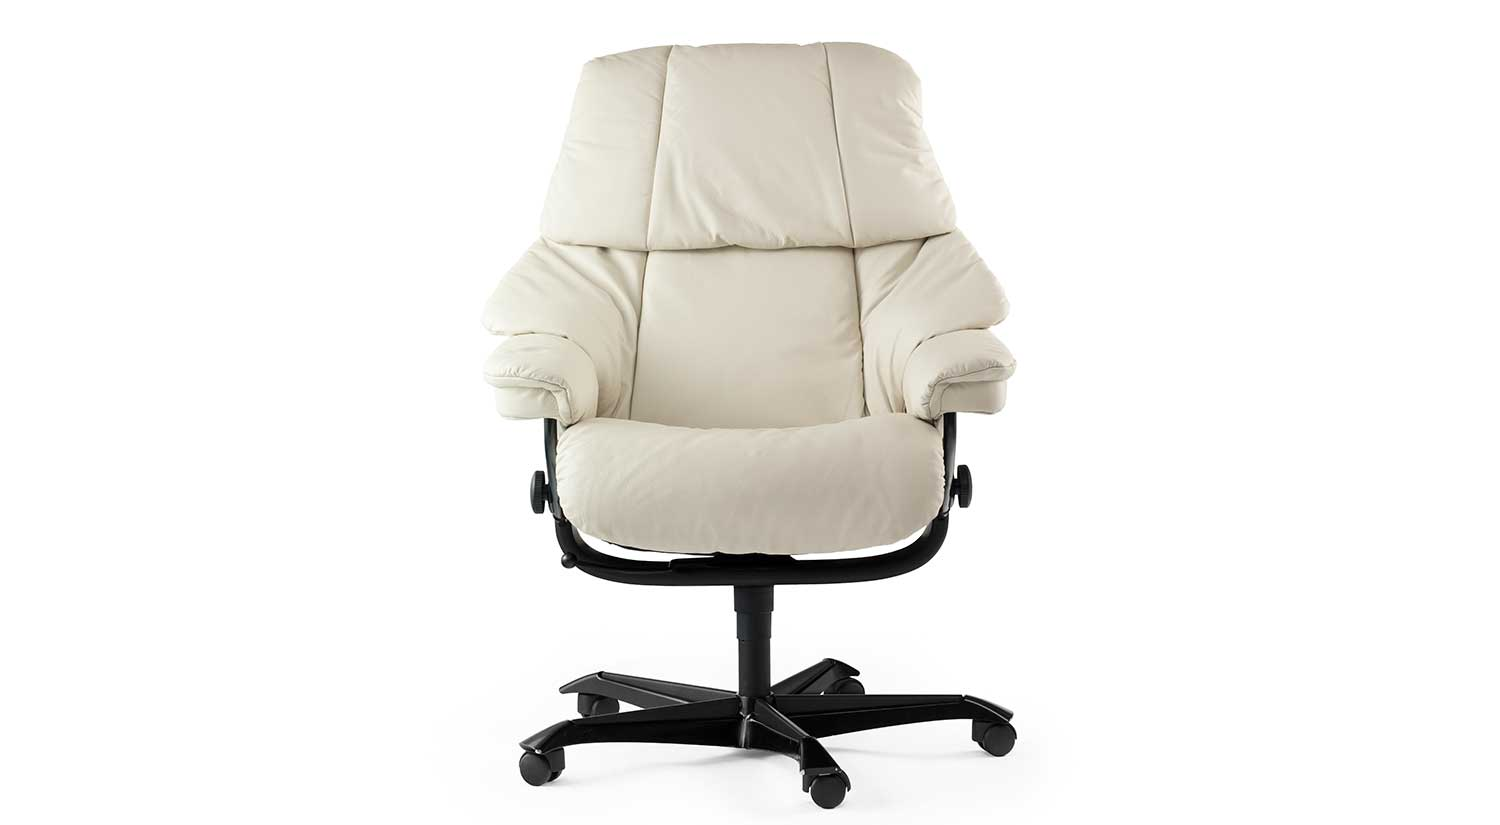 Circle Furniture Stressless Reno Office Chair Office Chairs MA